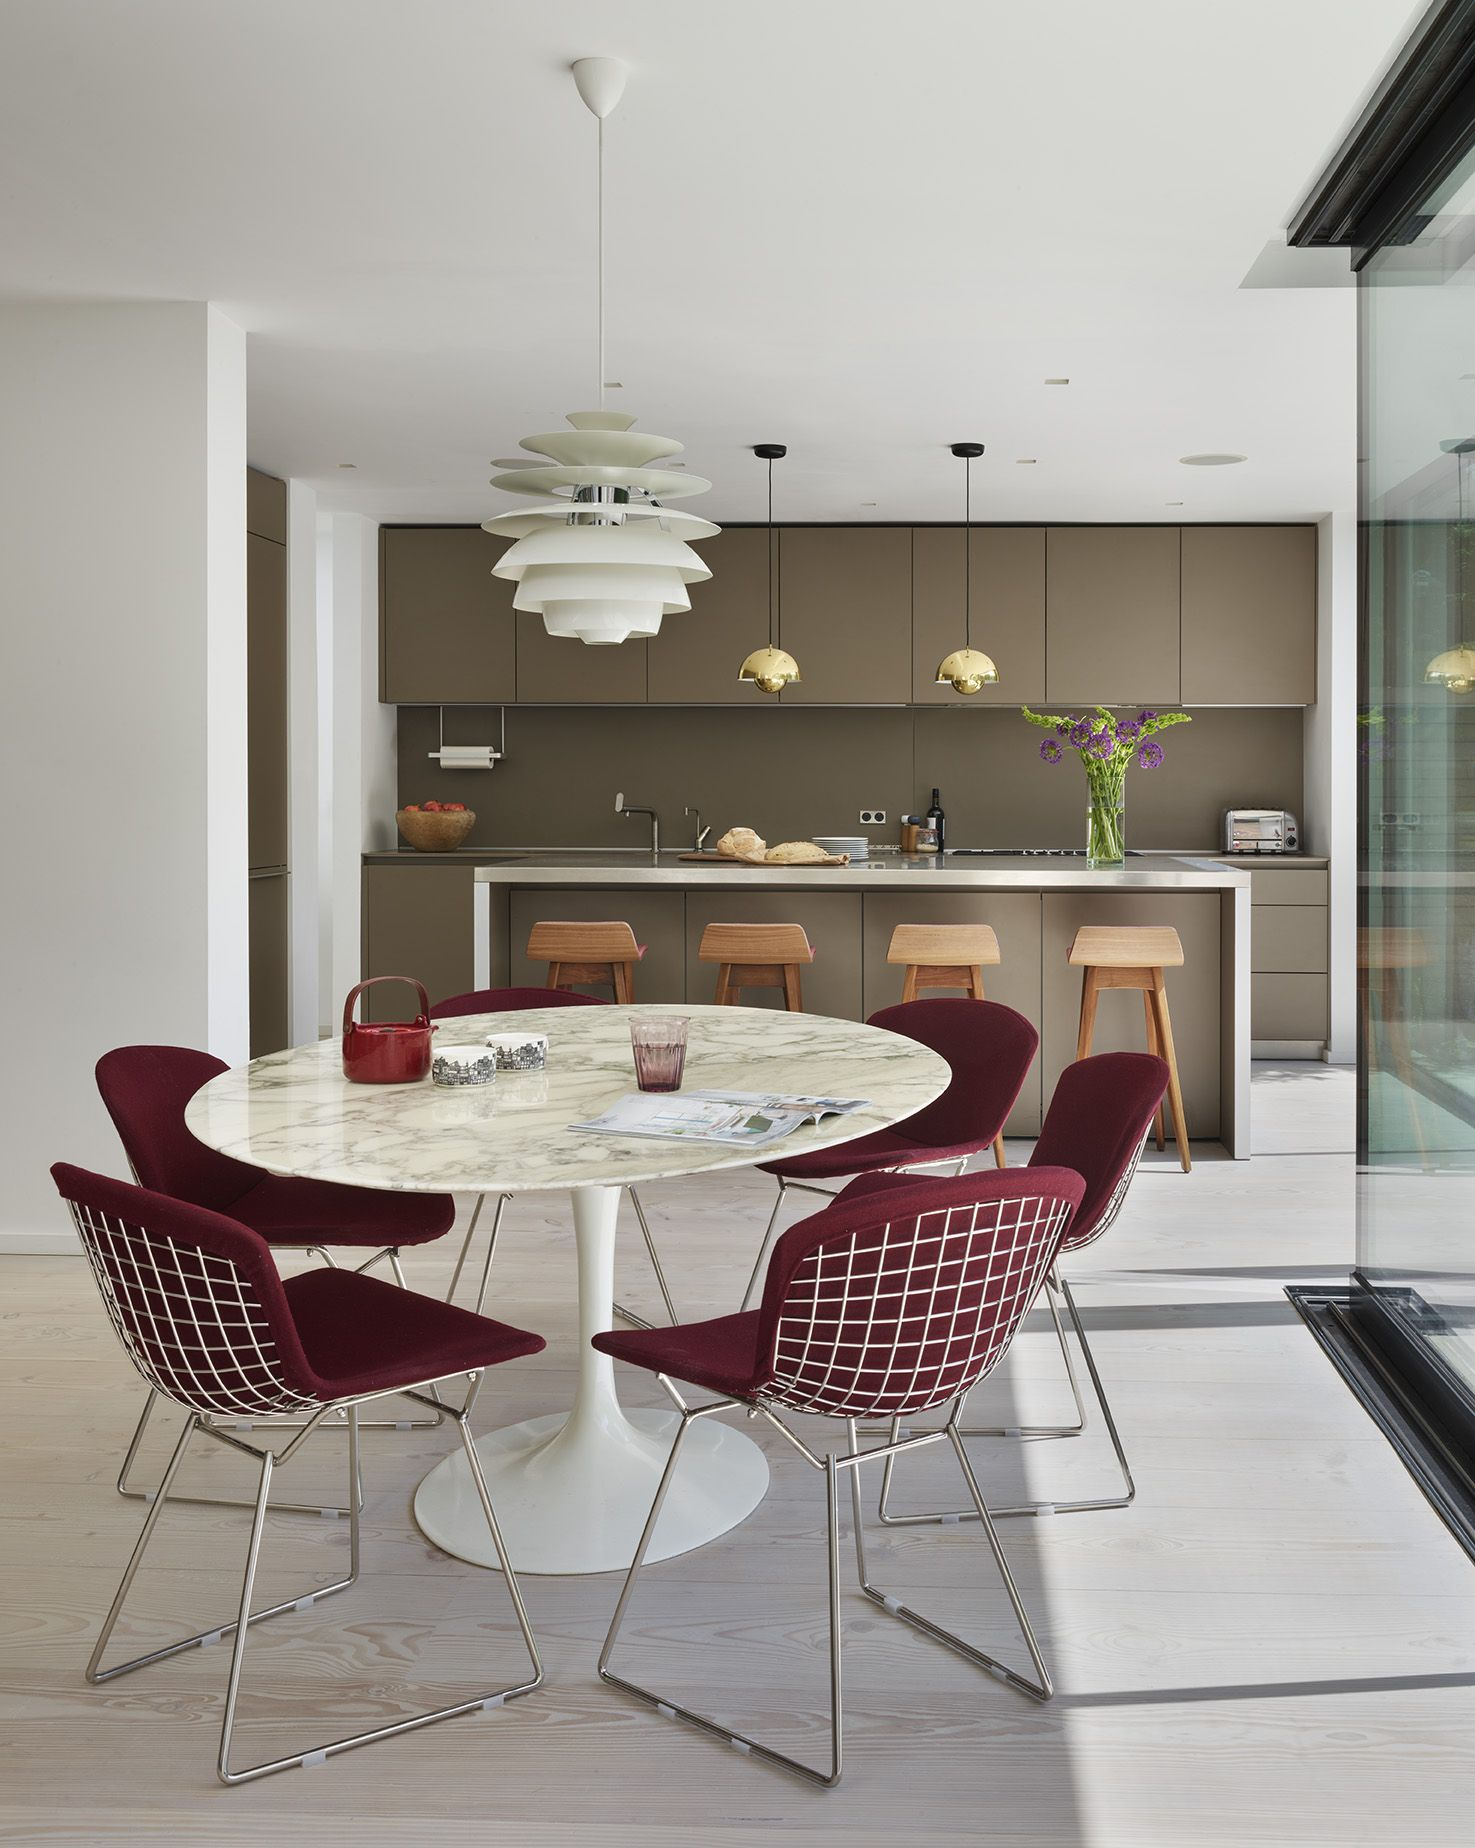 kitchen architecture b3 furniture in clay with a stainless steel rh pinterest co uk